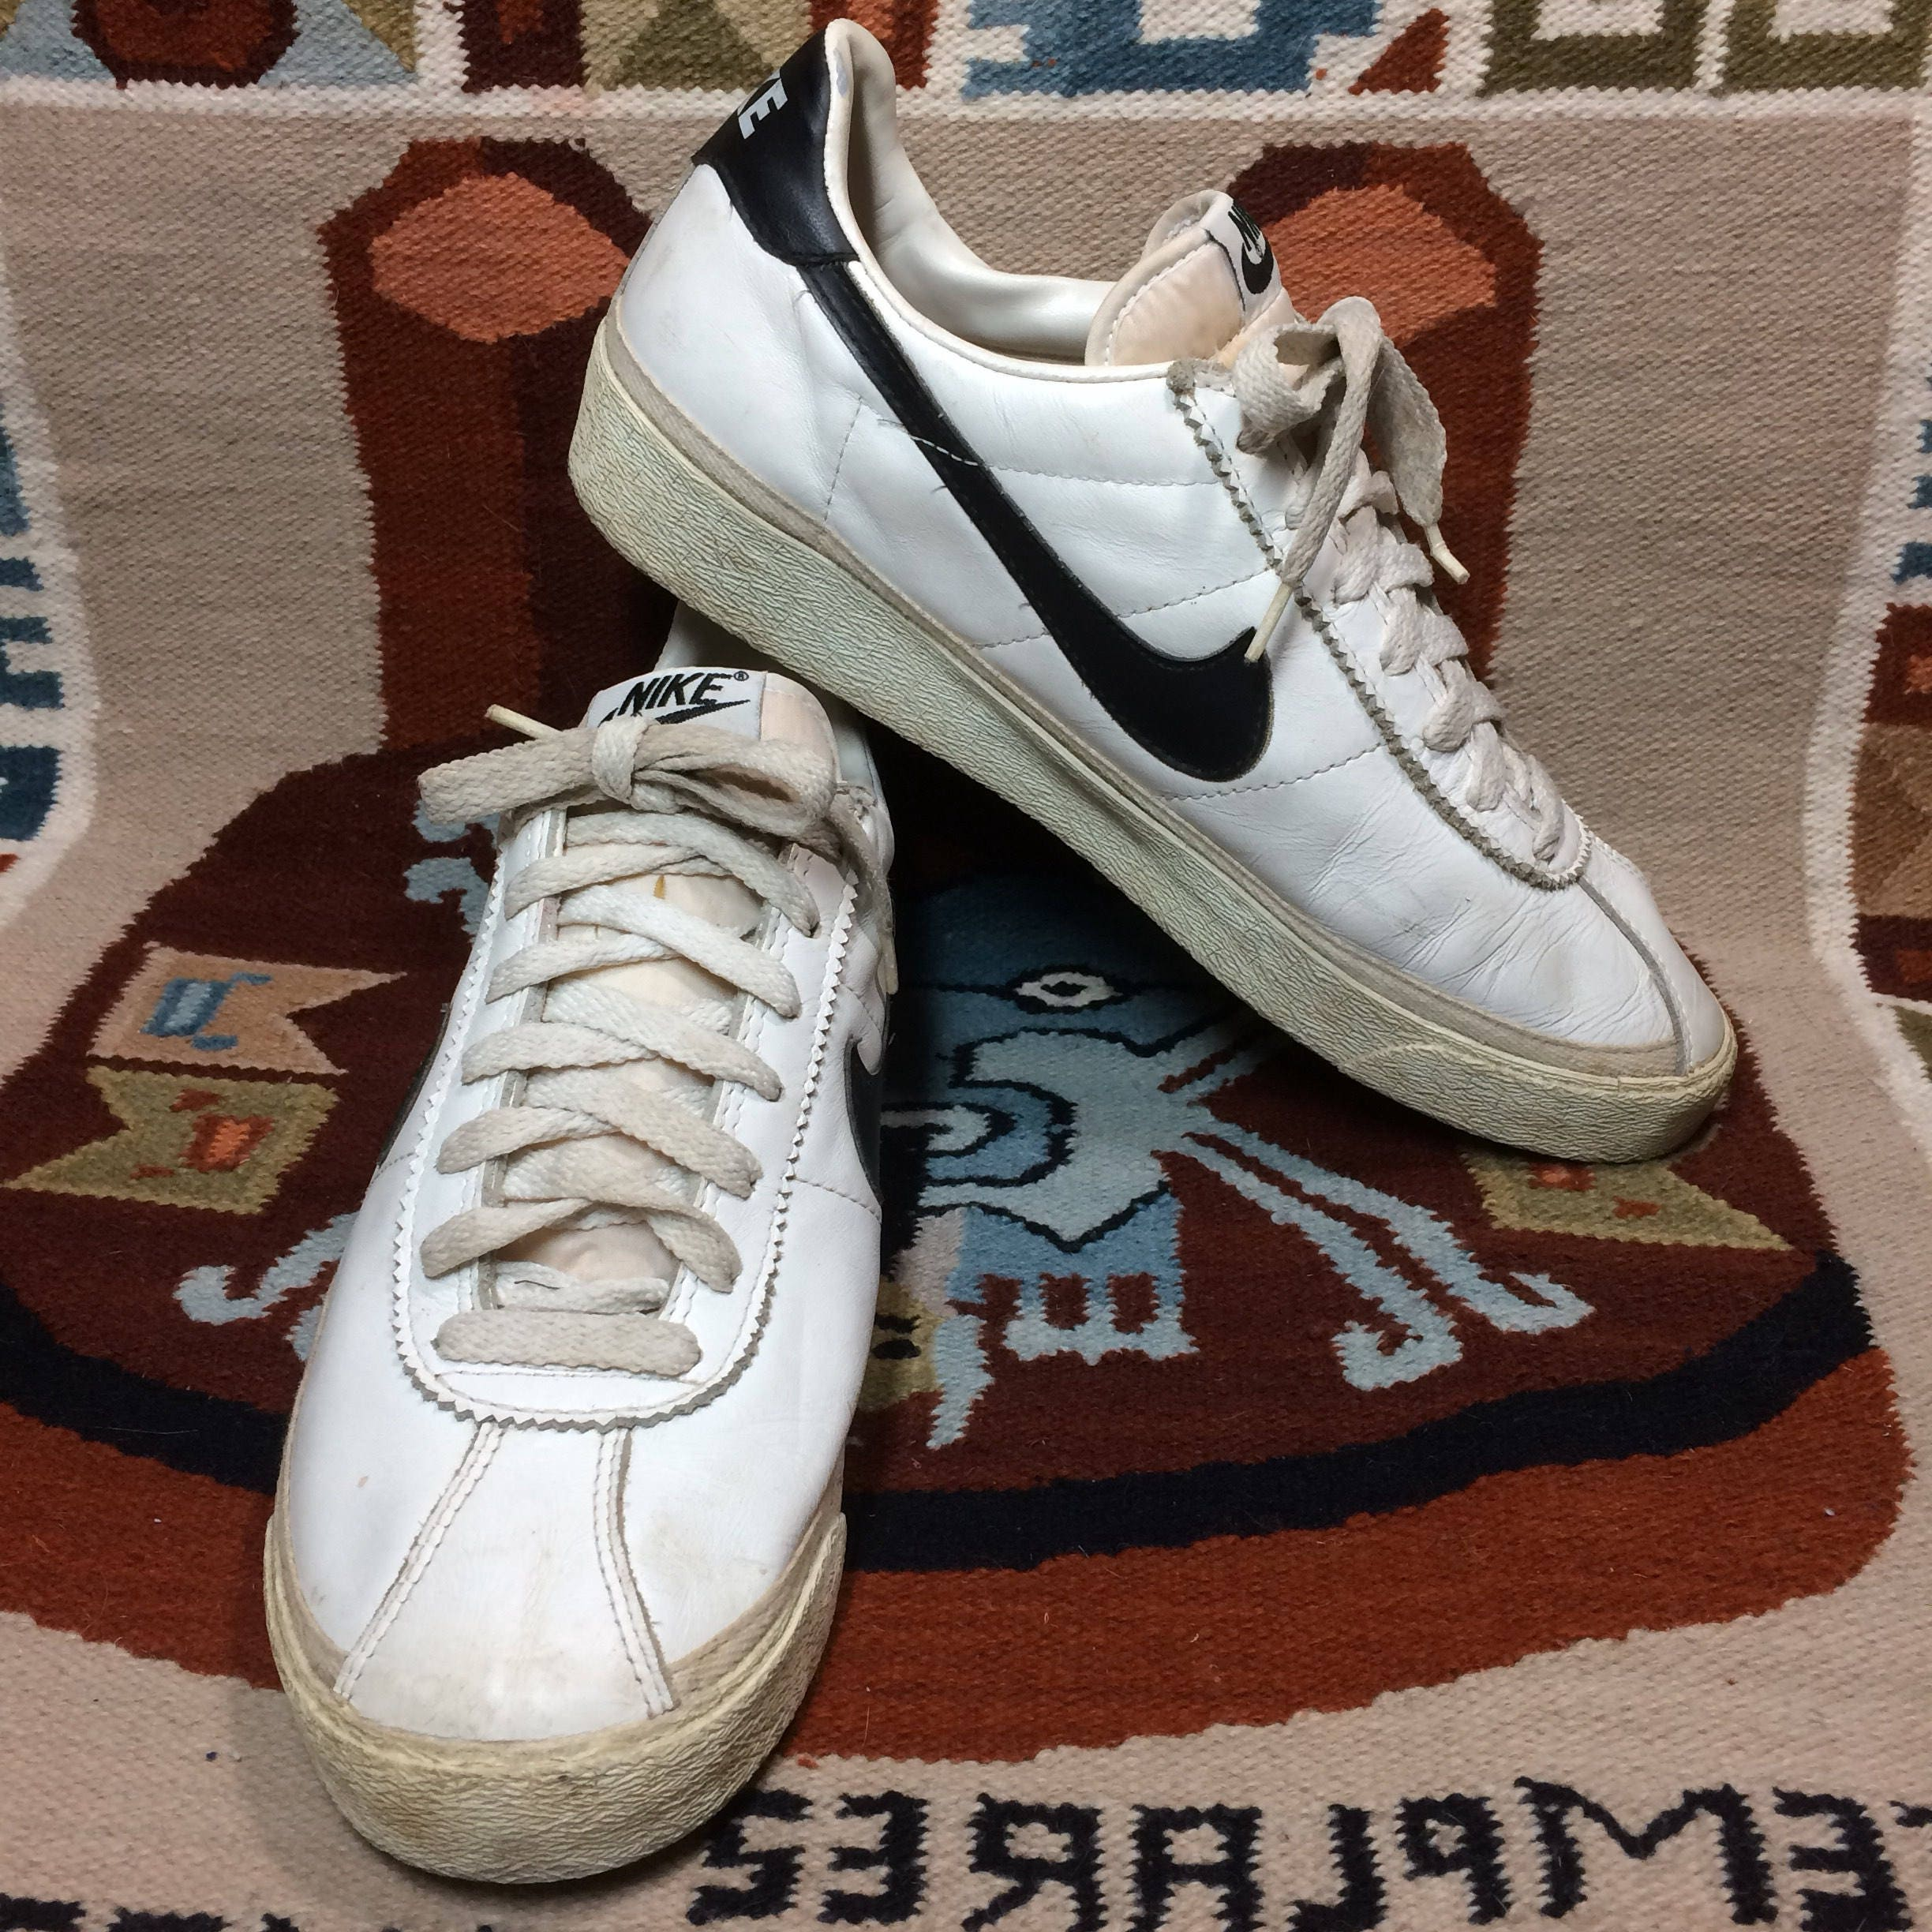 1994 Nike Bruin leather Sneakers size 9 White black swoosh made in Thailand  Marty McFly back to the future